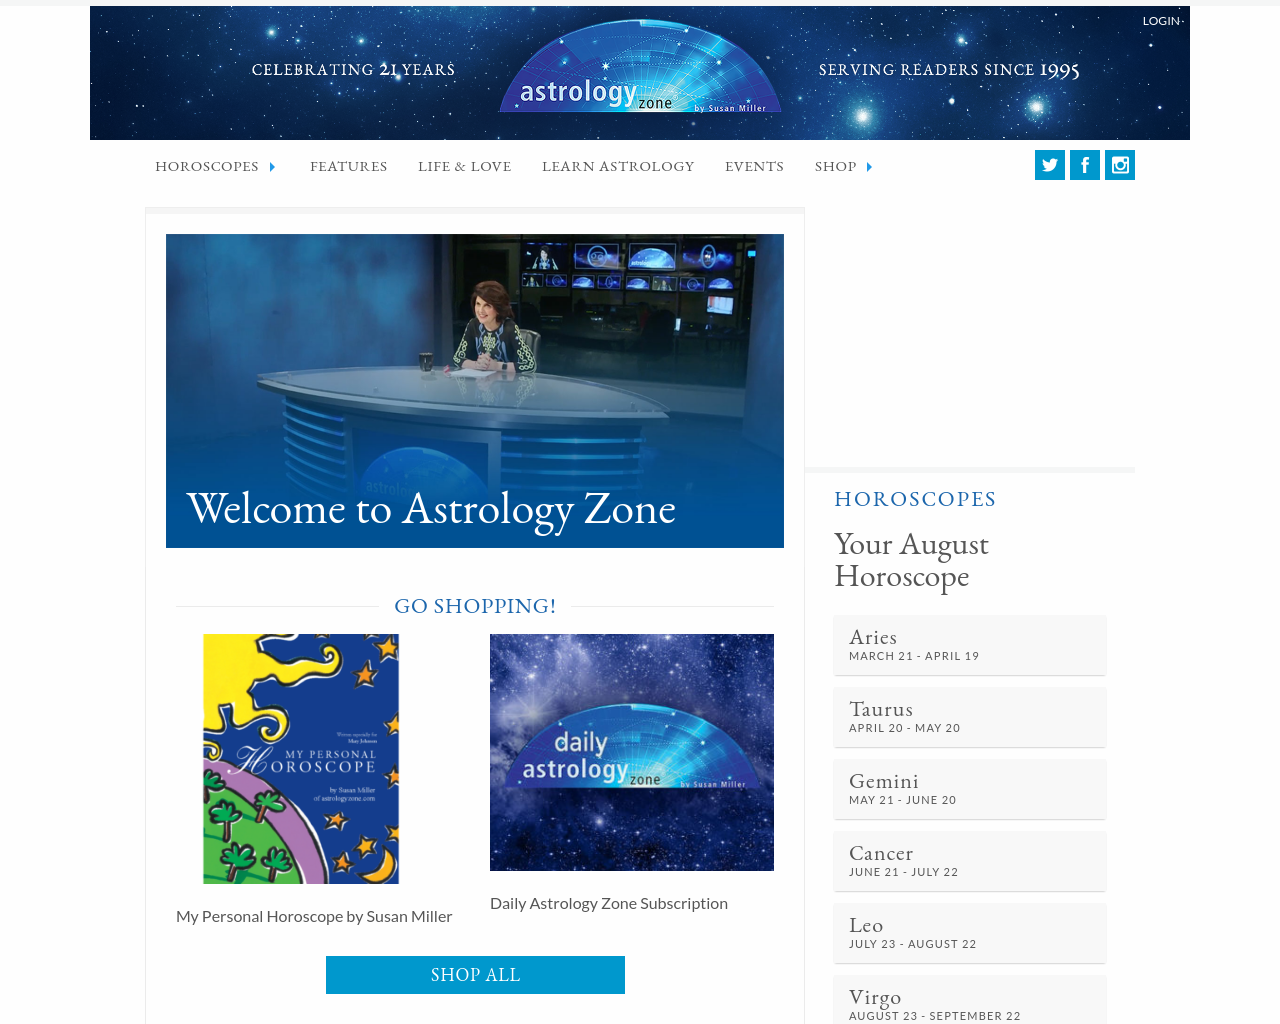 Astrologyzone.com-Advertising-Reviews-Pricing